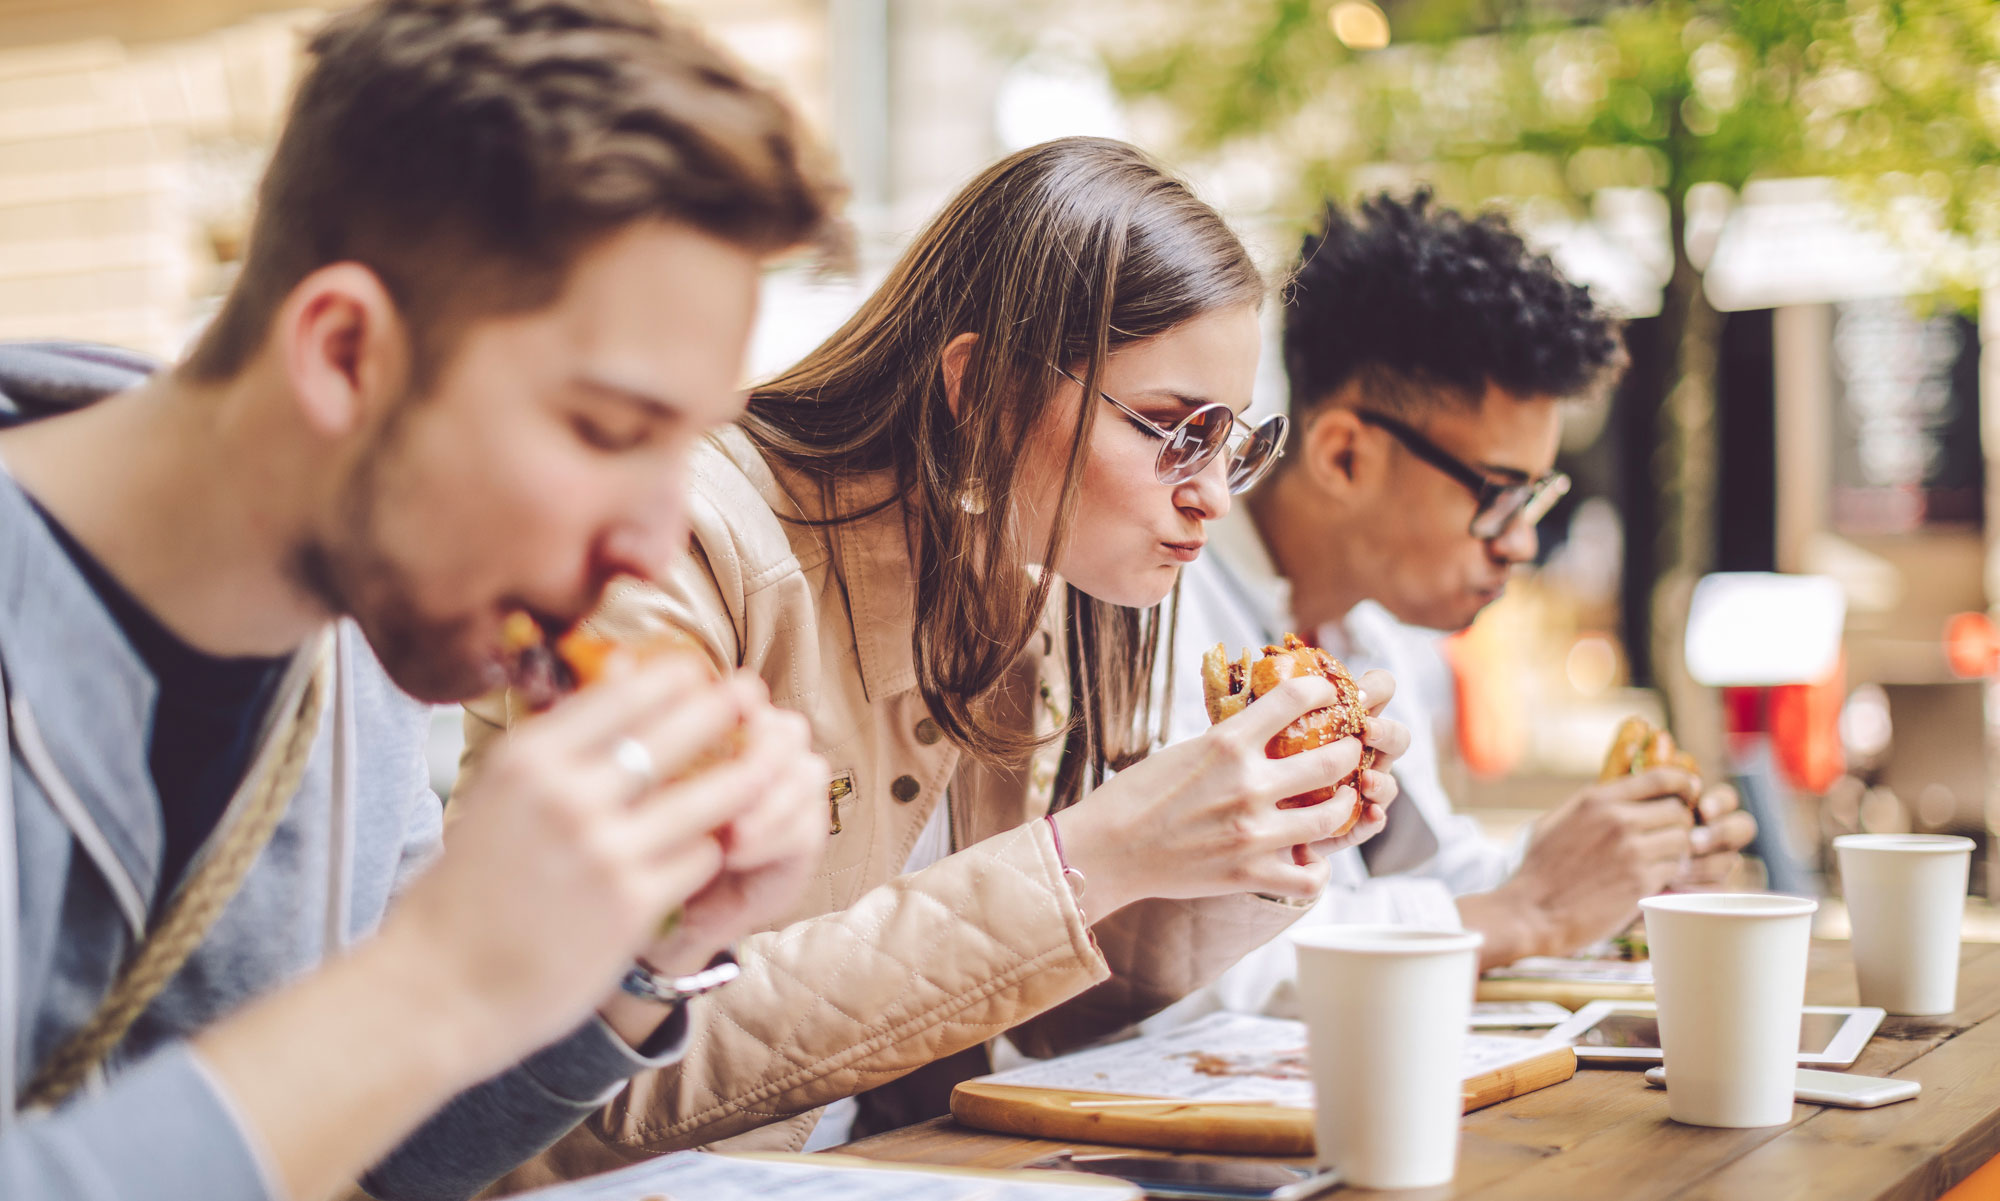 Three young people eating burgers.